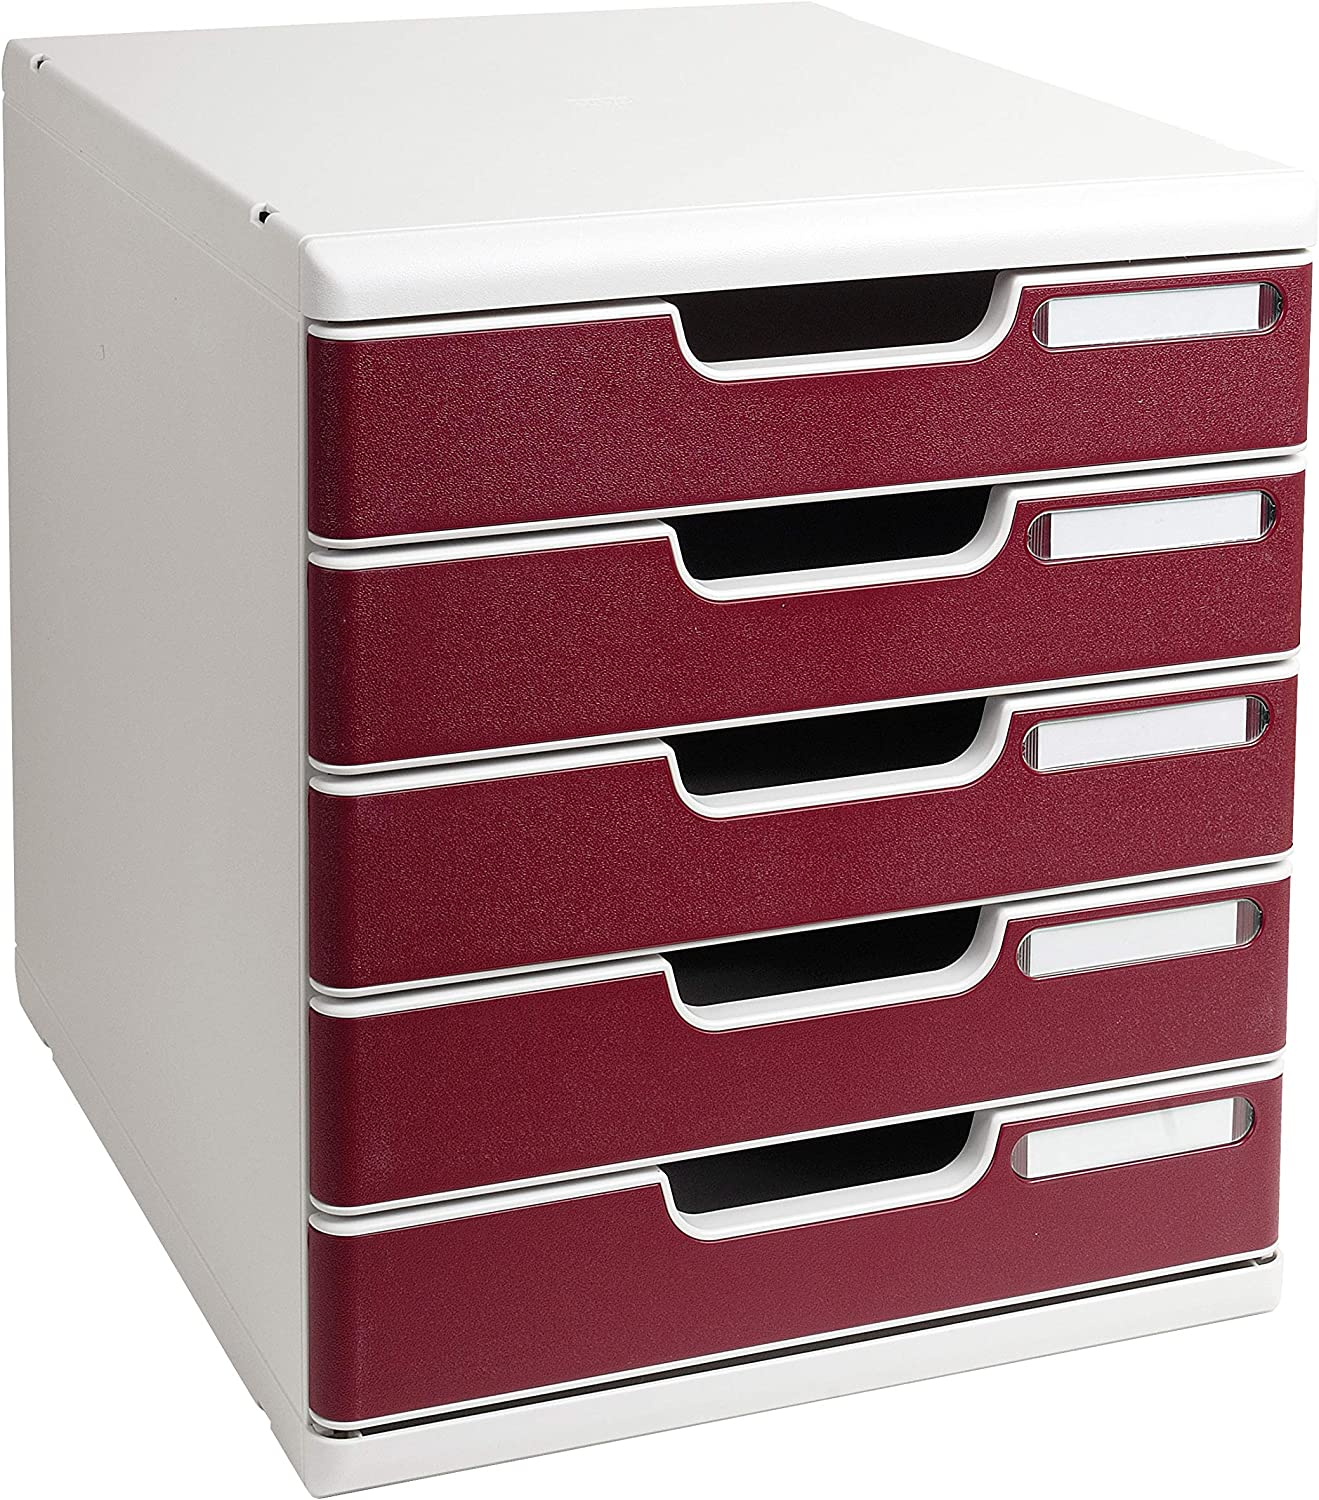 Exacompta 350 x 288 x 320 mm Modulo A4 Office, 5 Closed Drawers, Light Grey/Burgundy